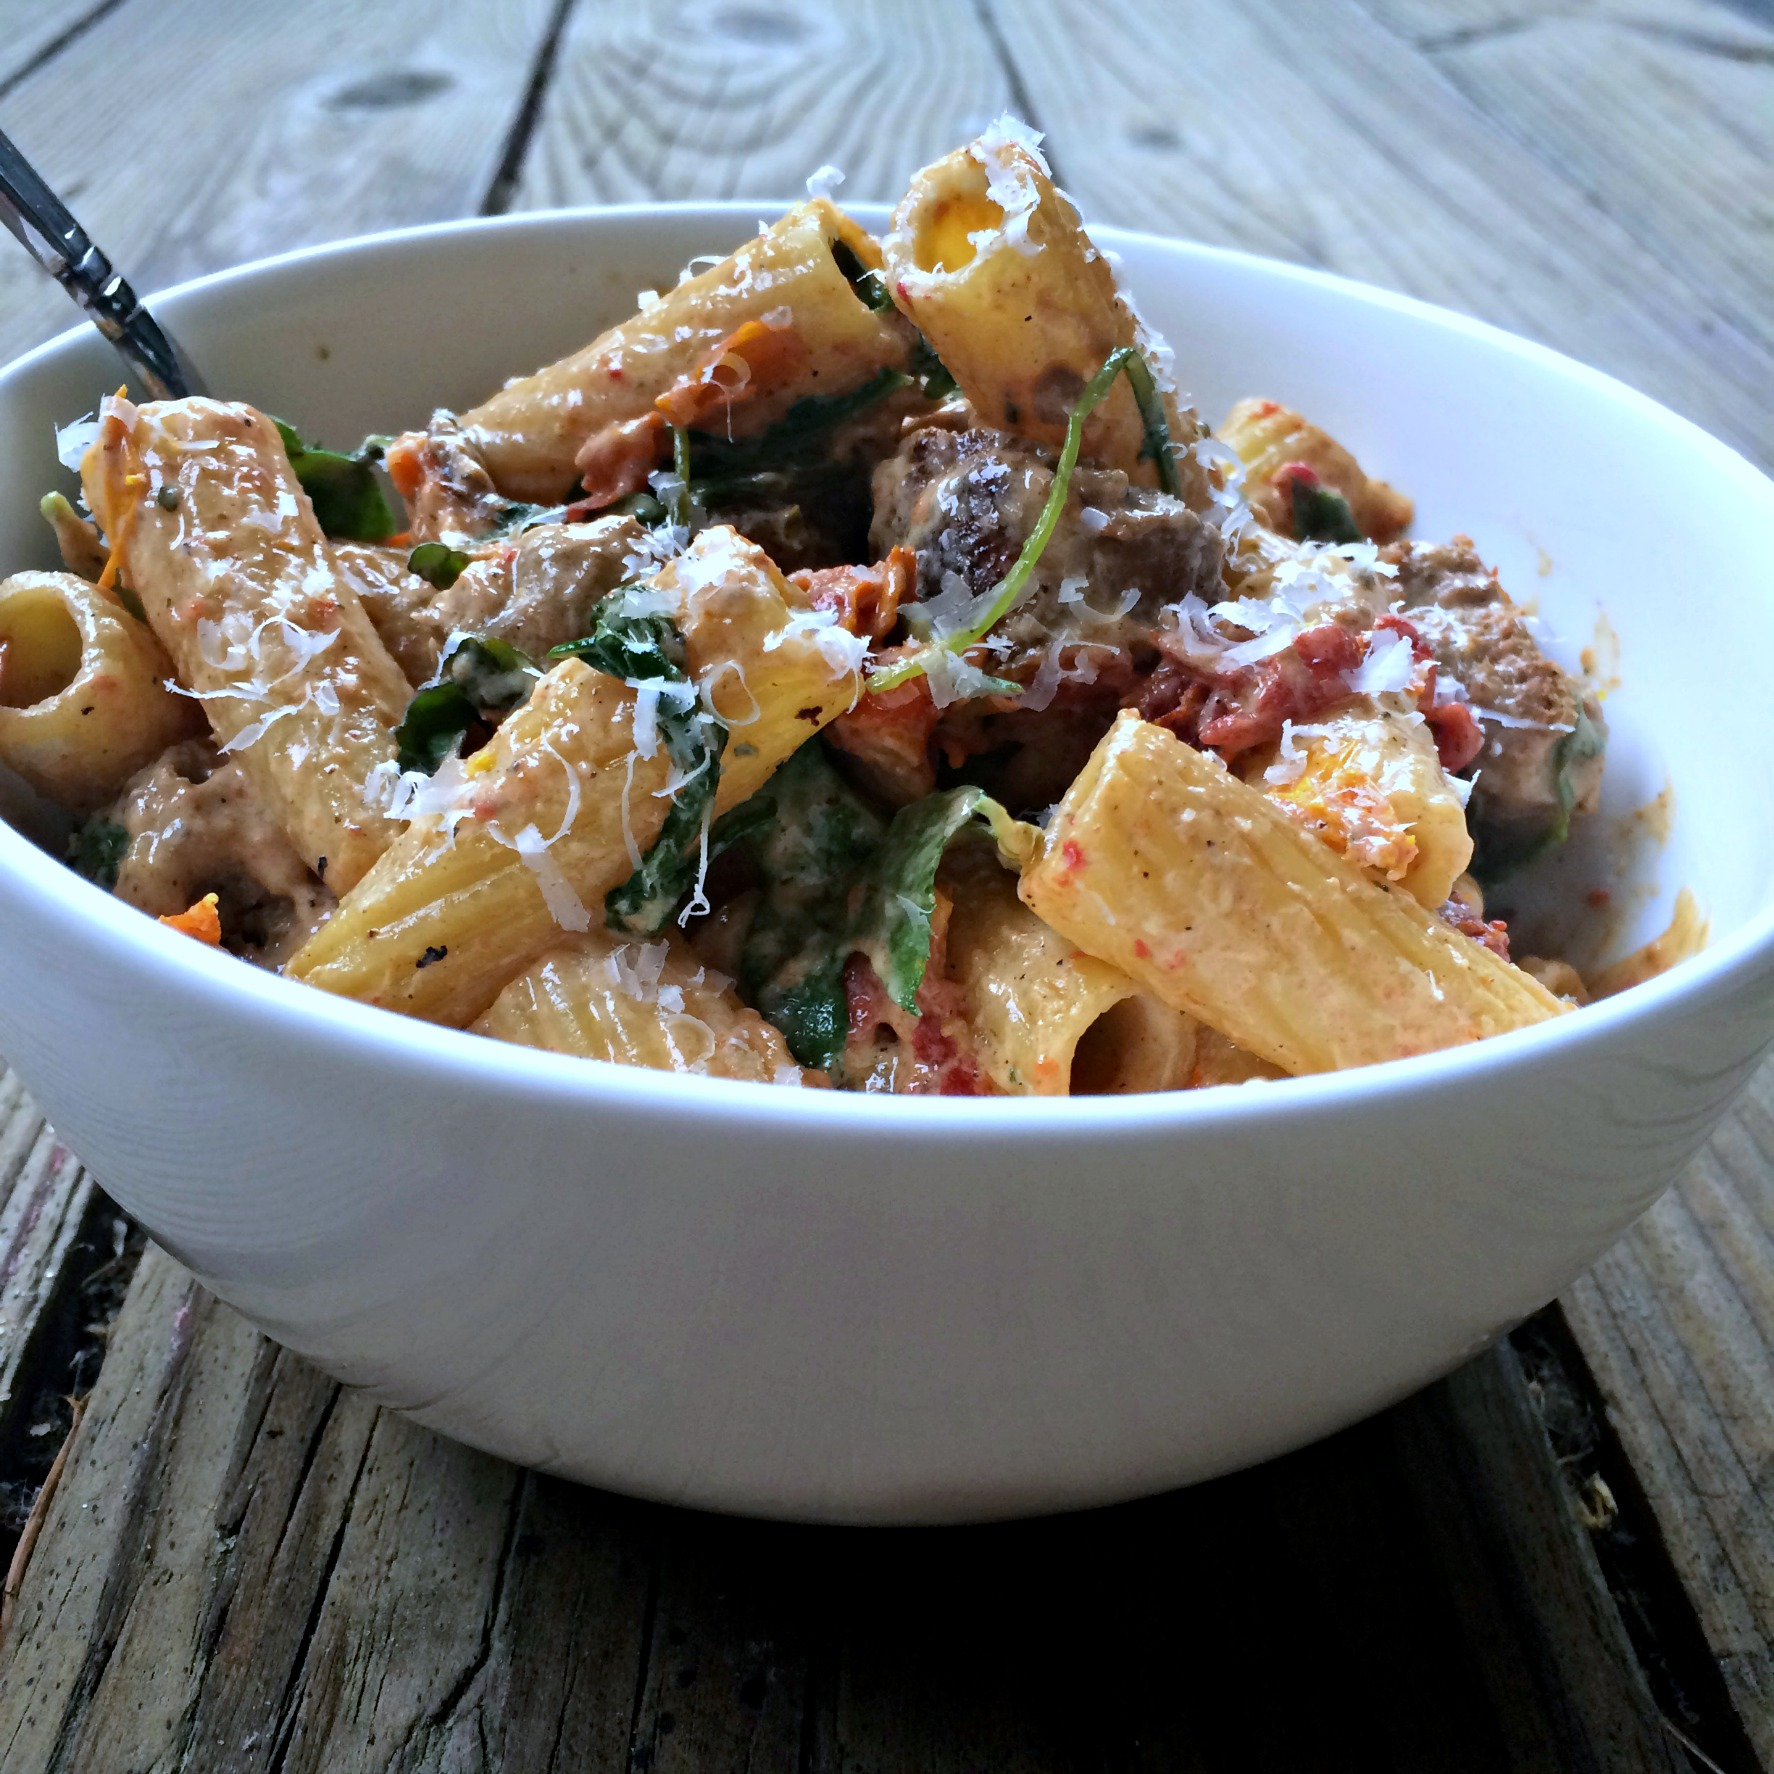 Pasta with Sun-Dried Tomatoes, Arugula, and Goat Cheese